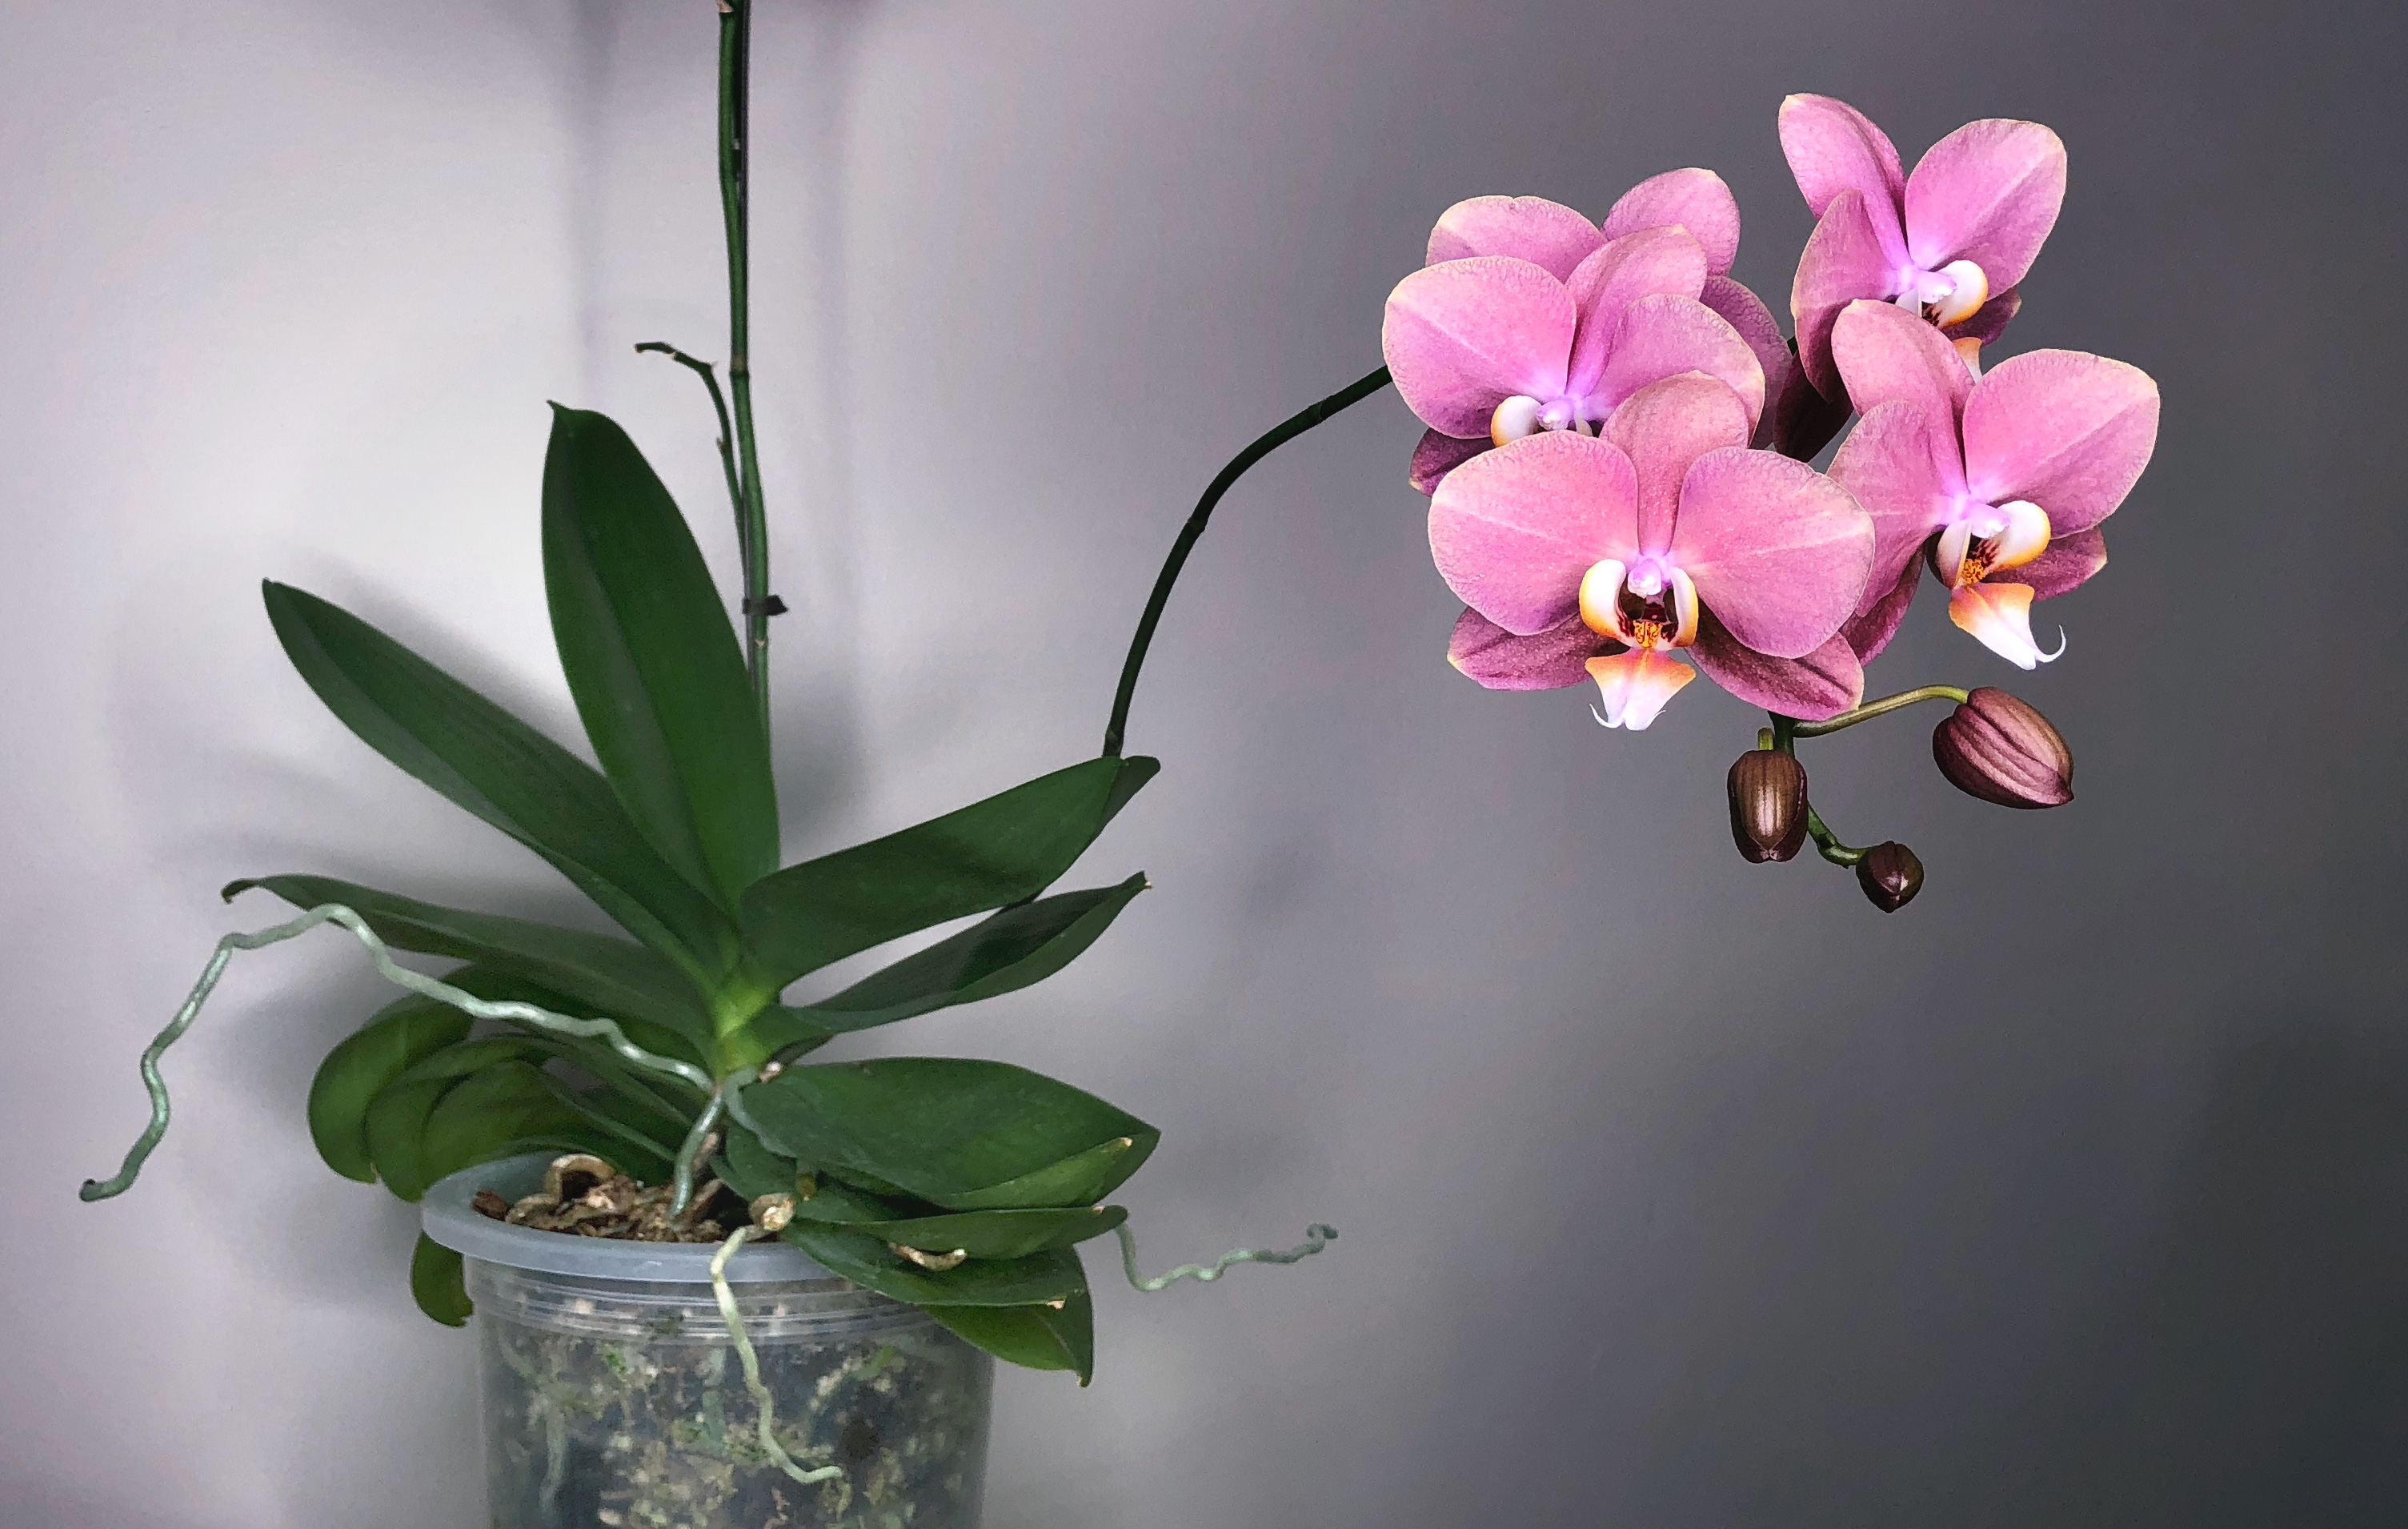 Beginner How To Rebloom Phalaenopsis Orchid Care Culture Here